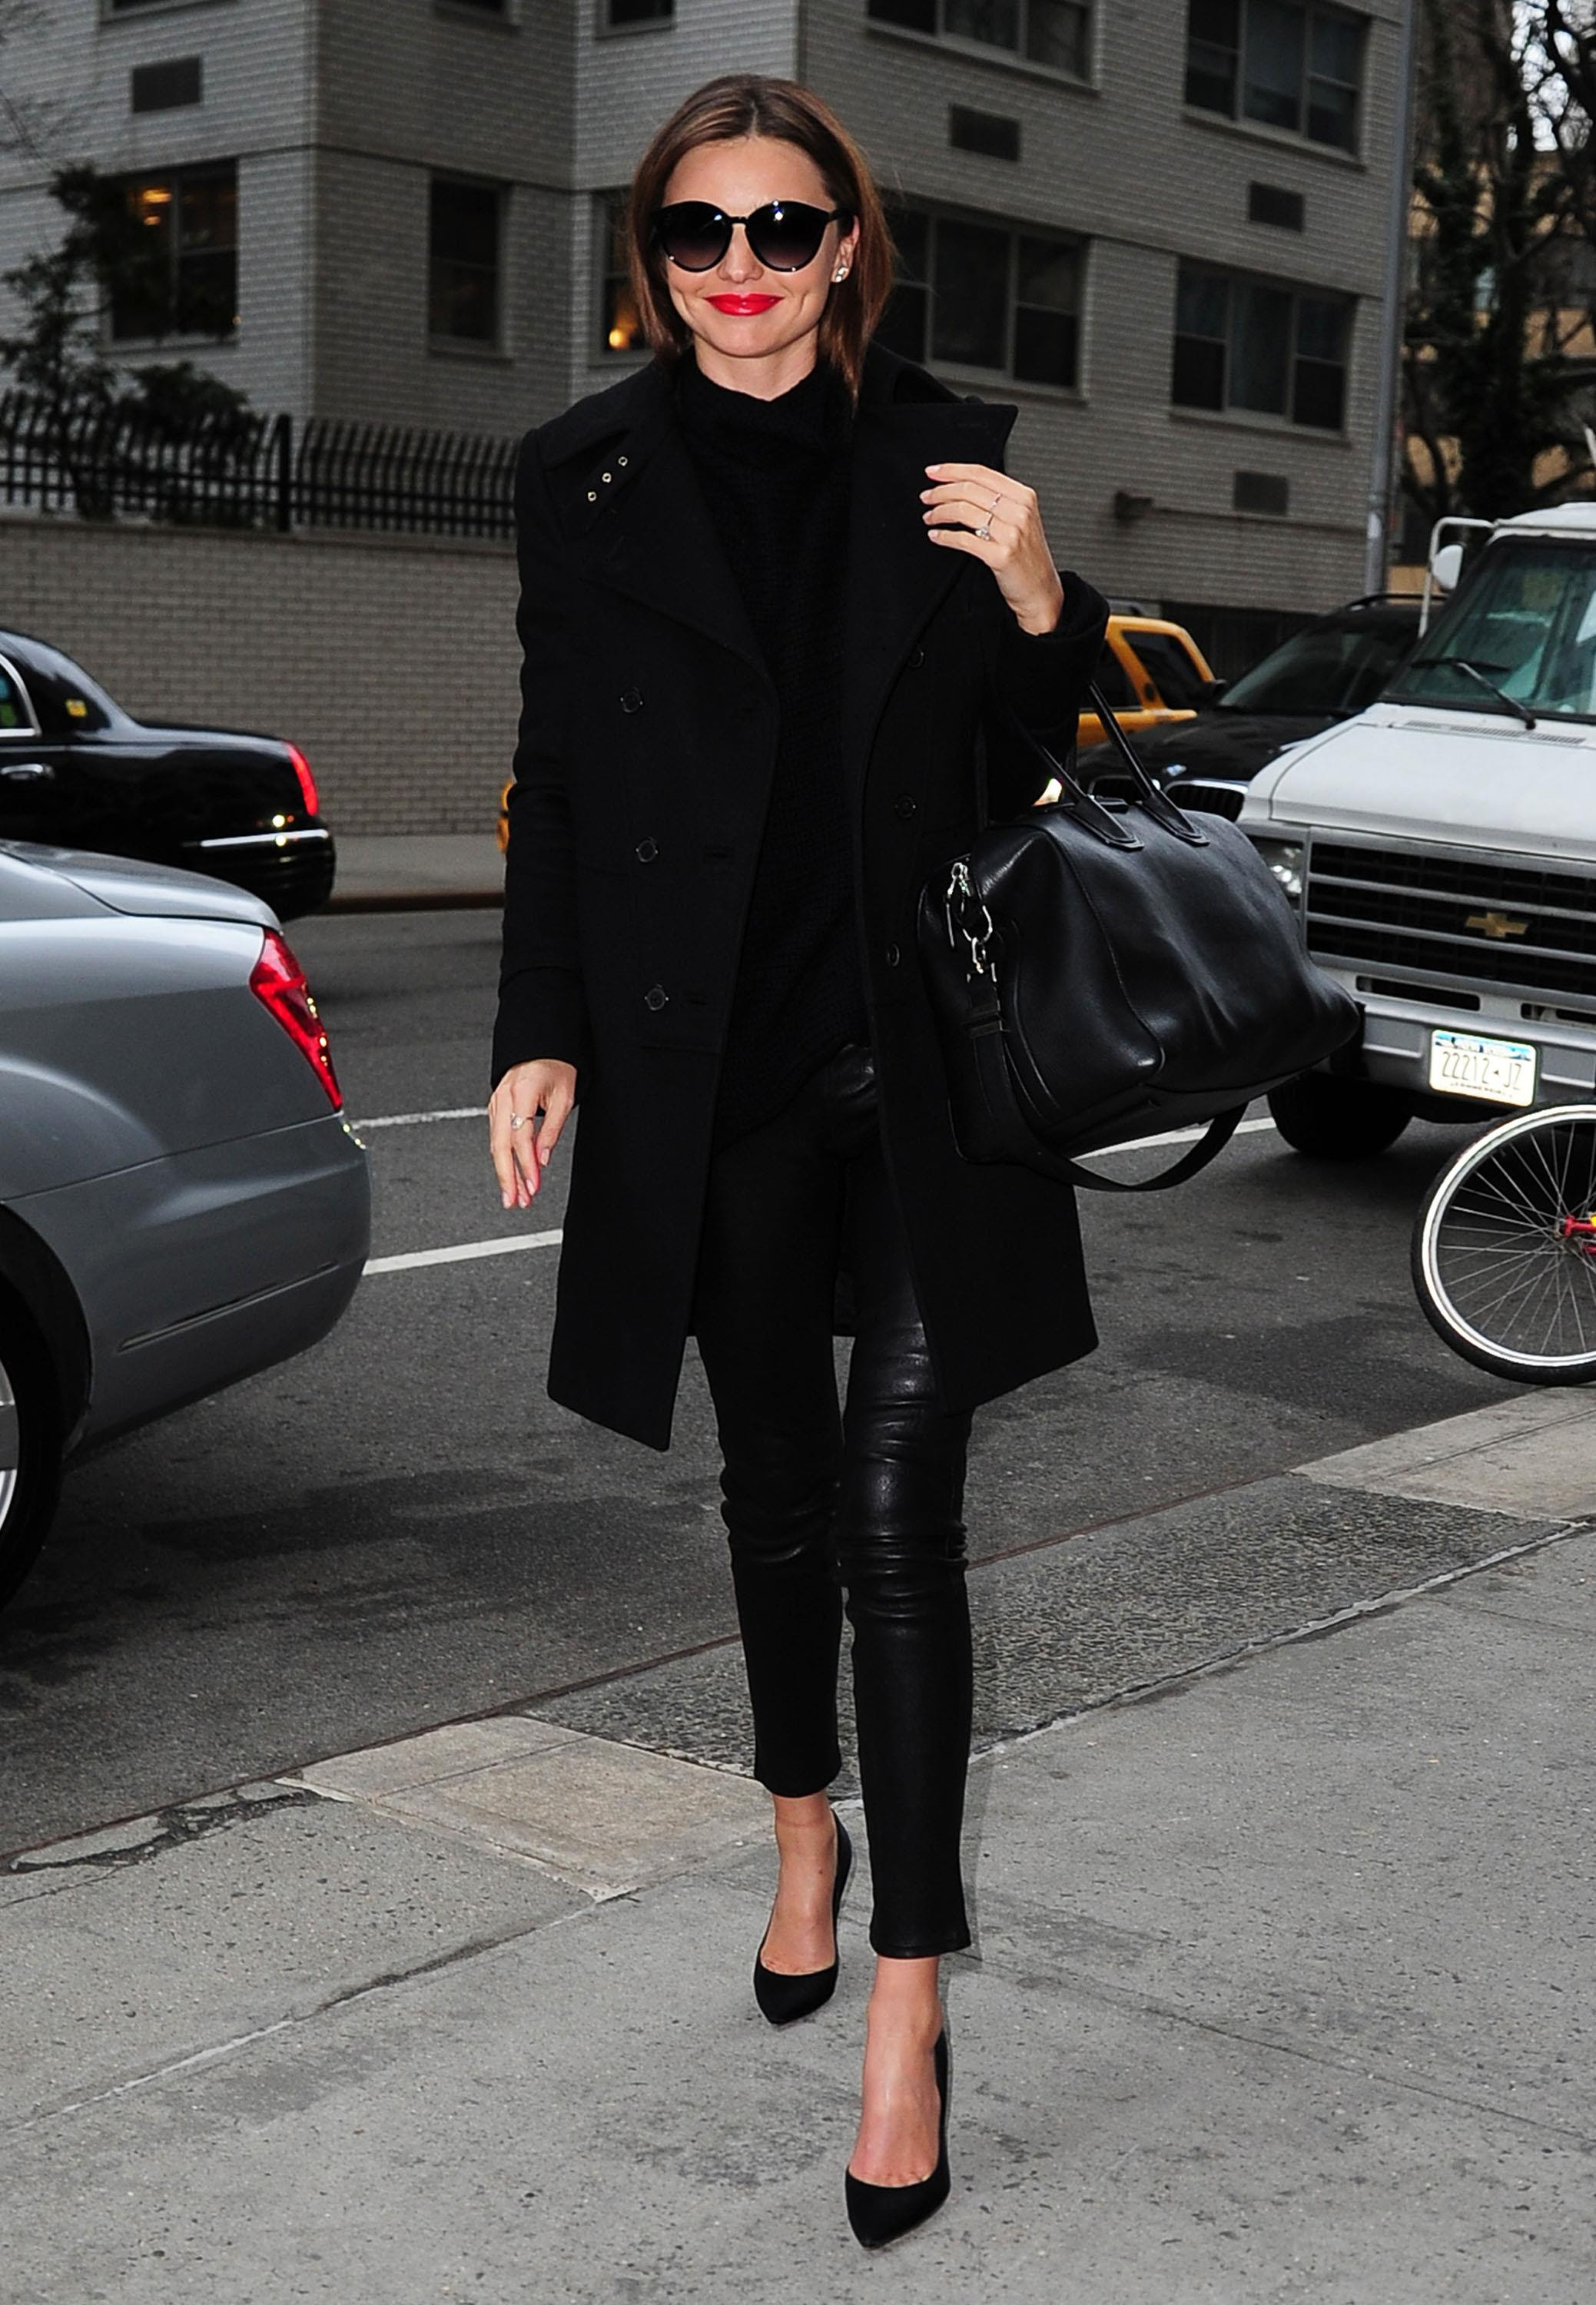 Miranda Kerr Street Style Winter Outfits At New York